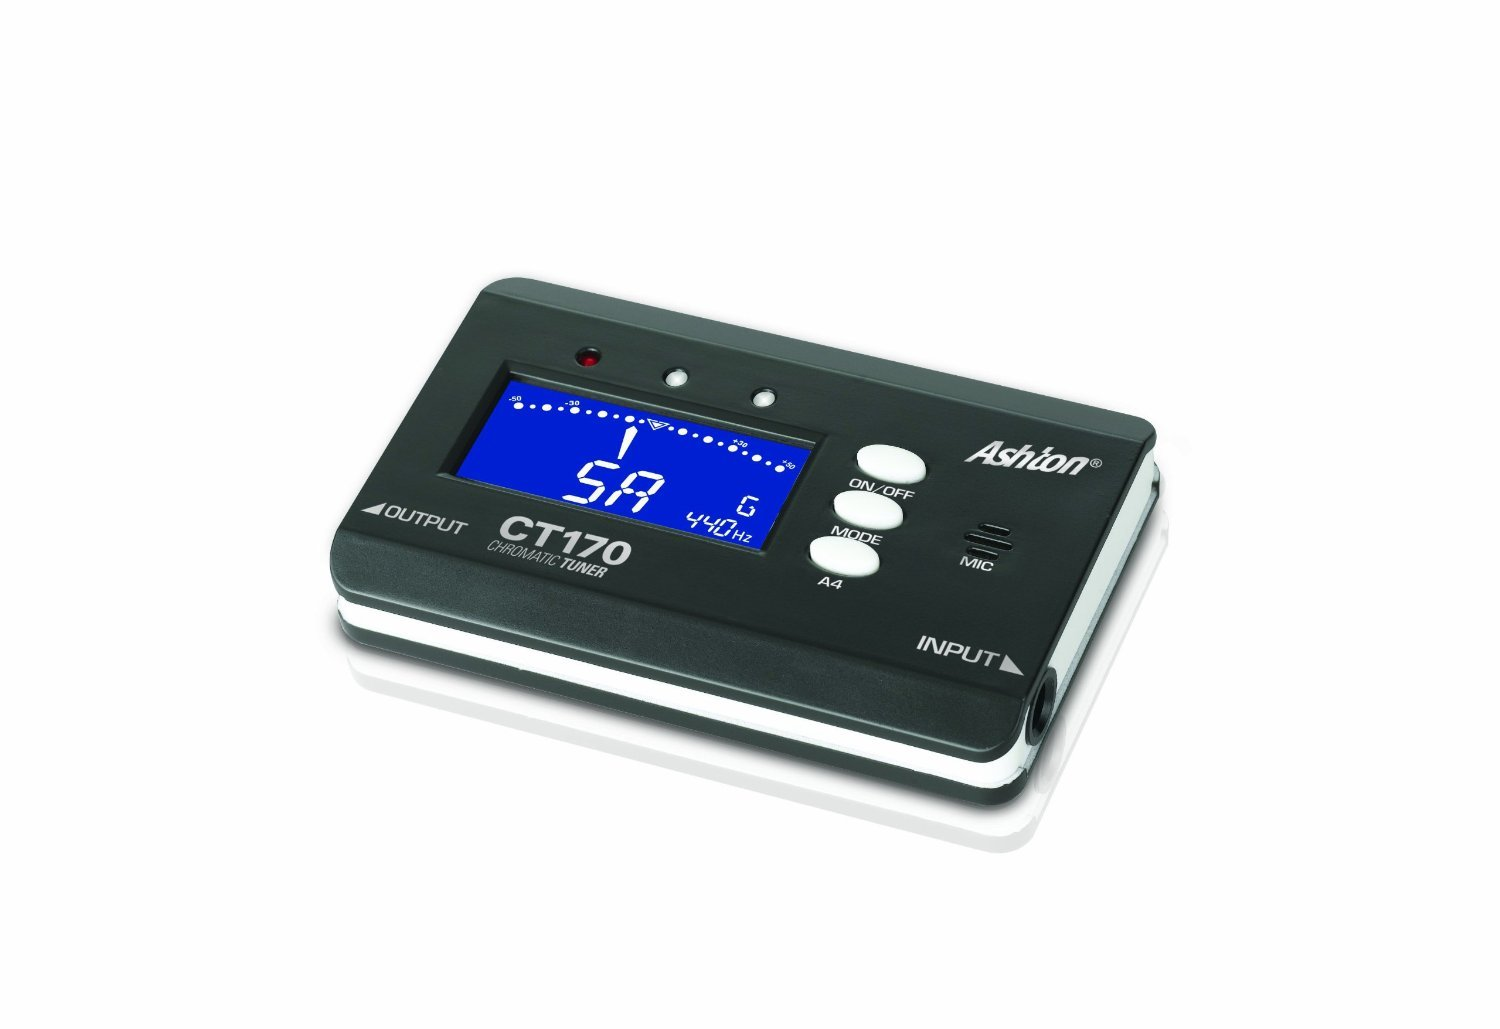 Ashton CT170 Chromatic Tuner for Guitar and Bass